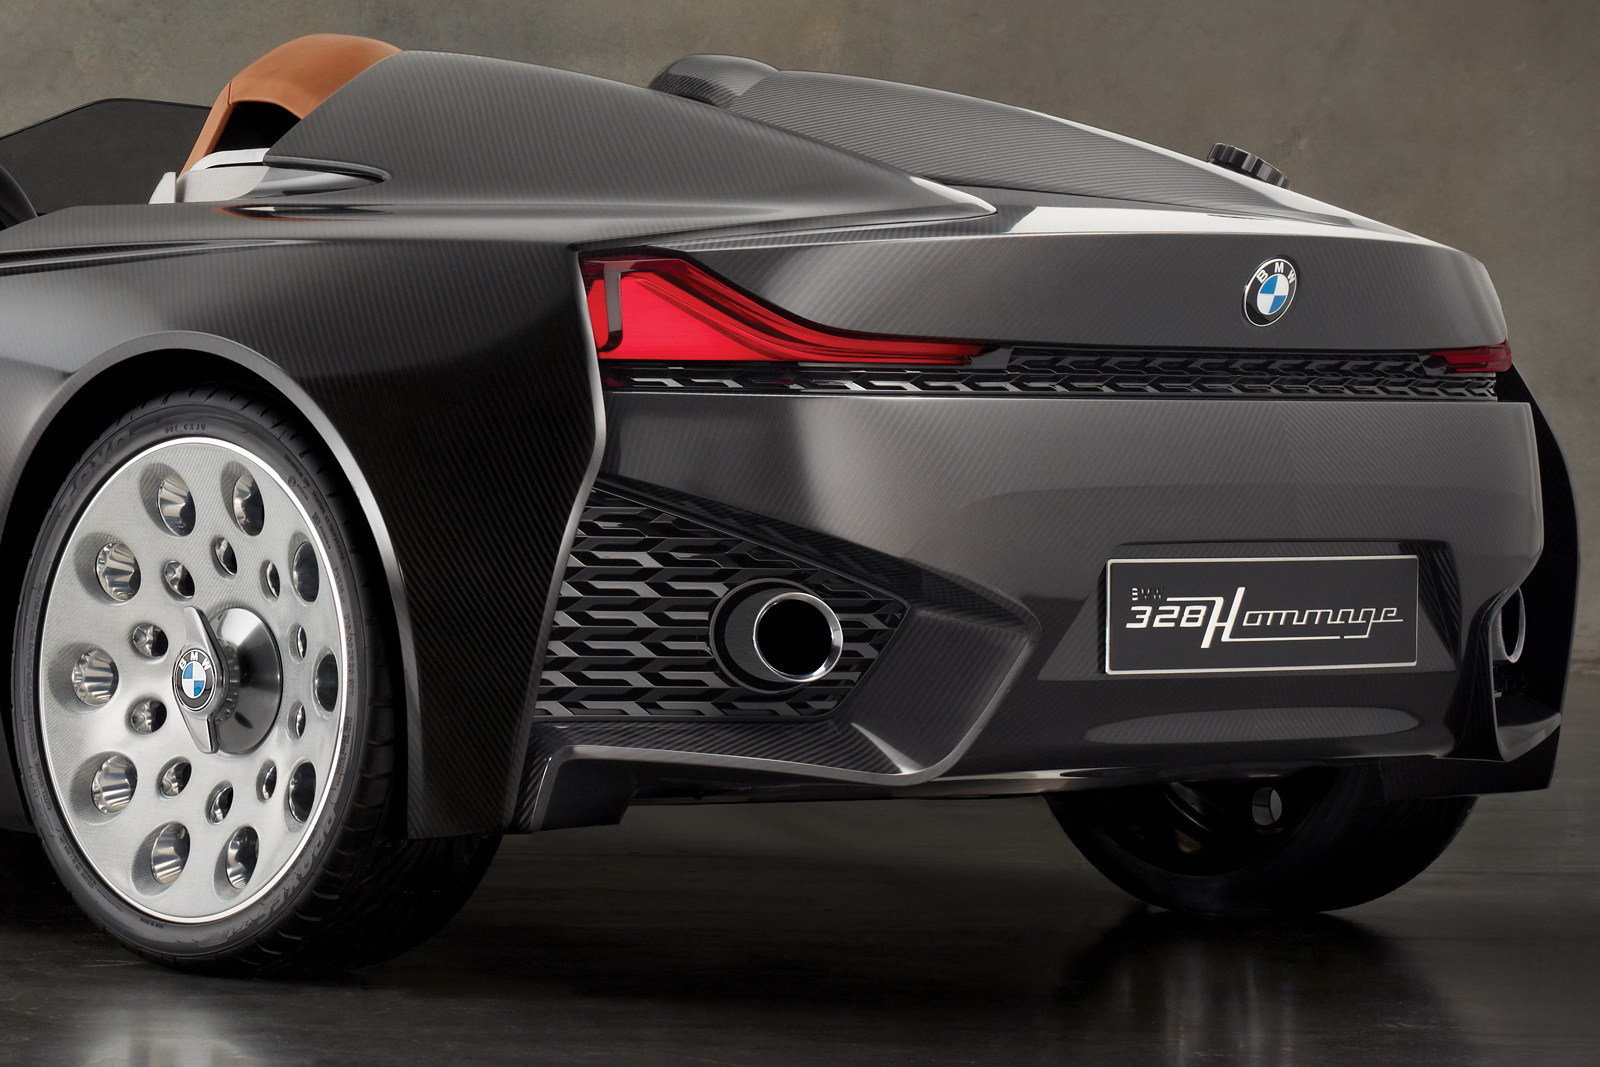 BMW 328 Hommage Concept 27 BMW's Retrolicious 328 Homage Concept Car to Launch Soon